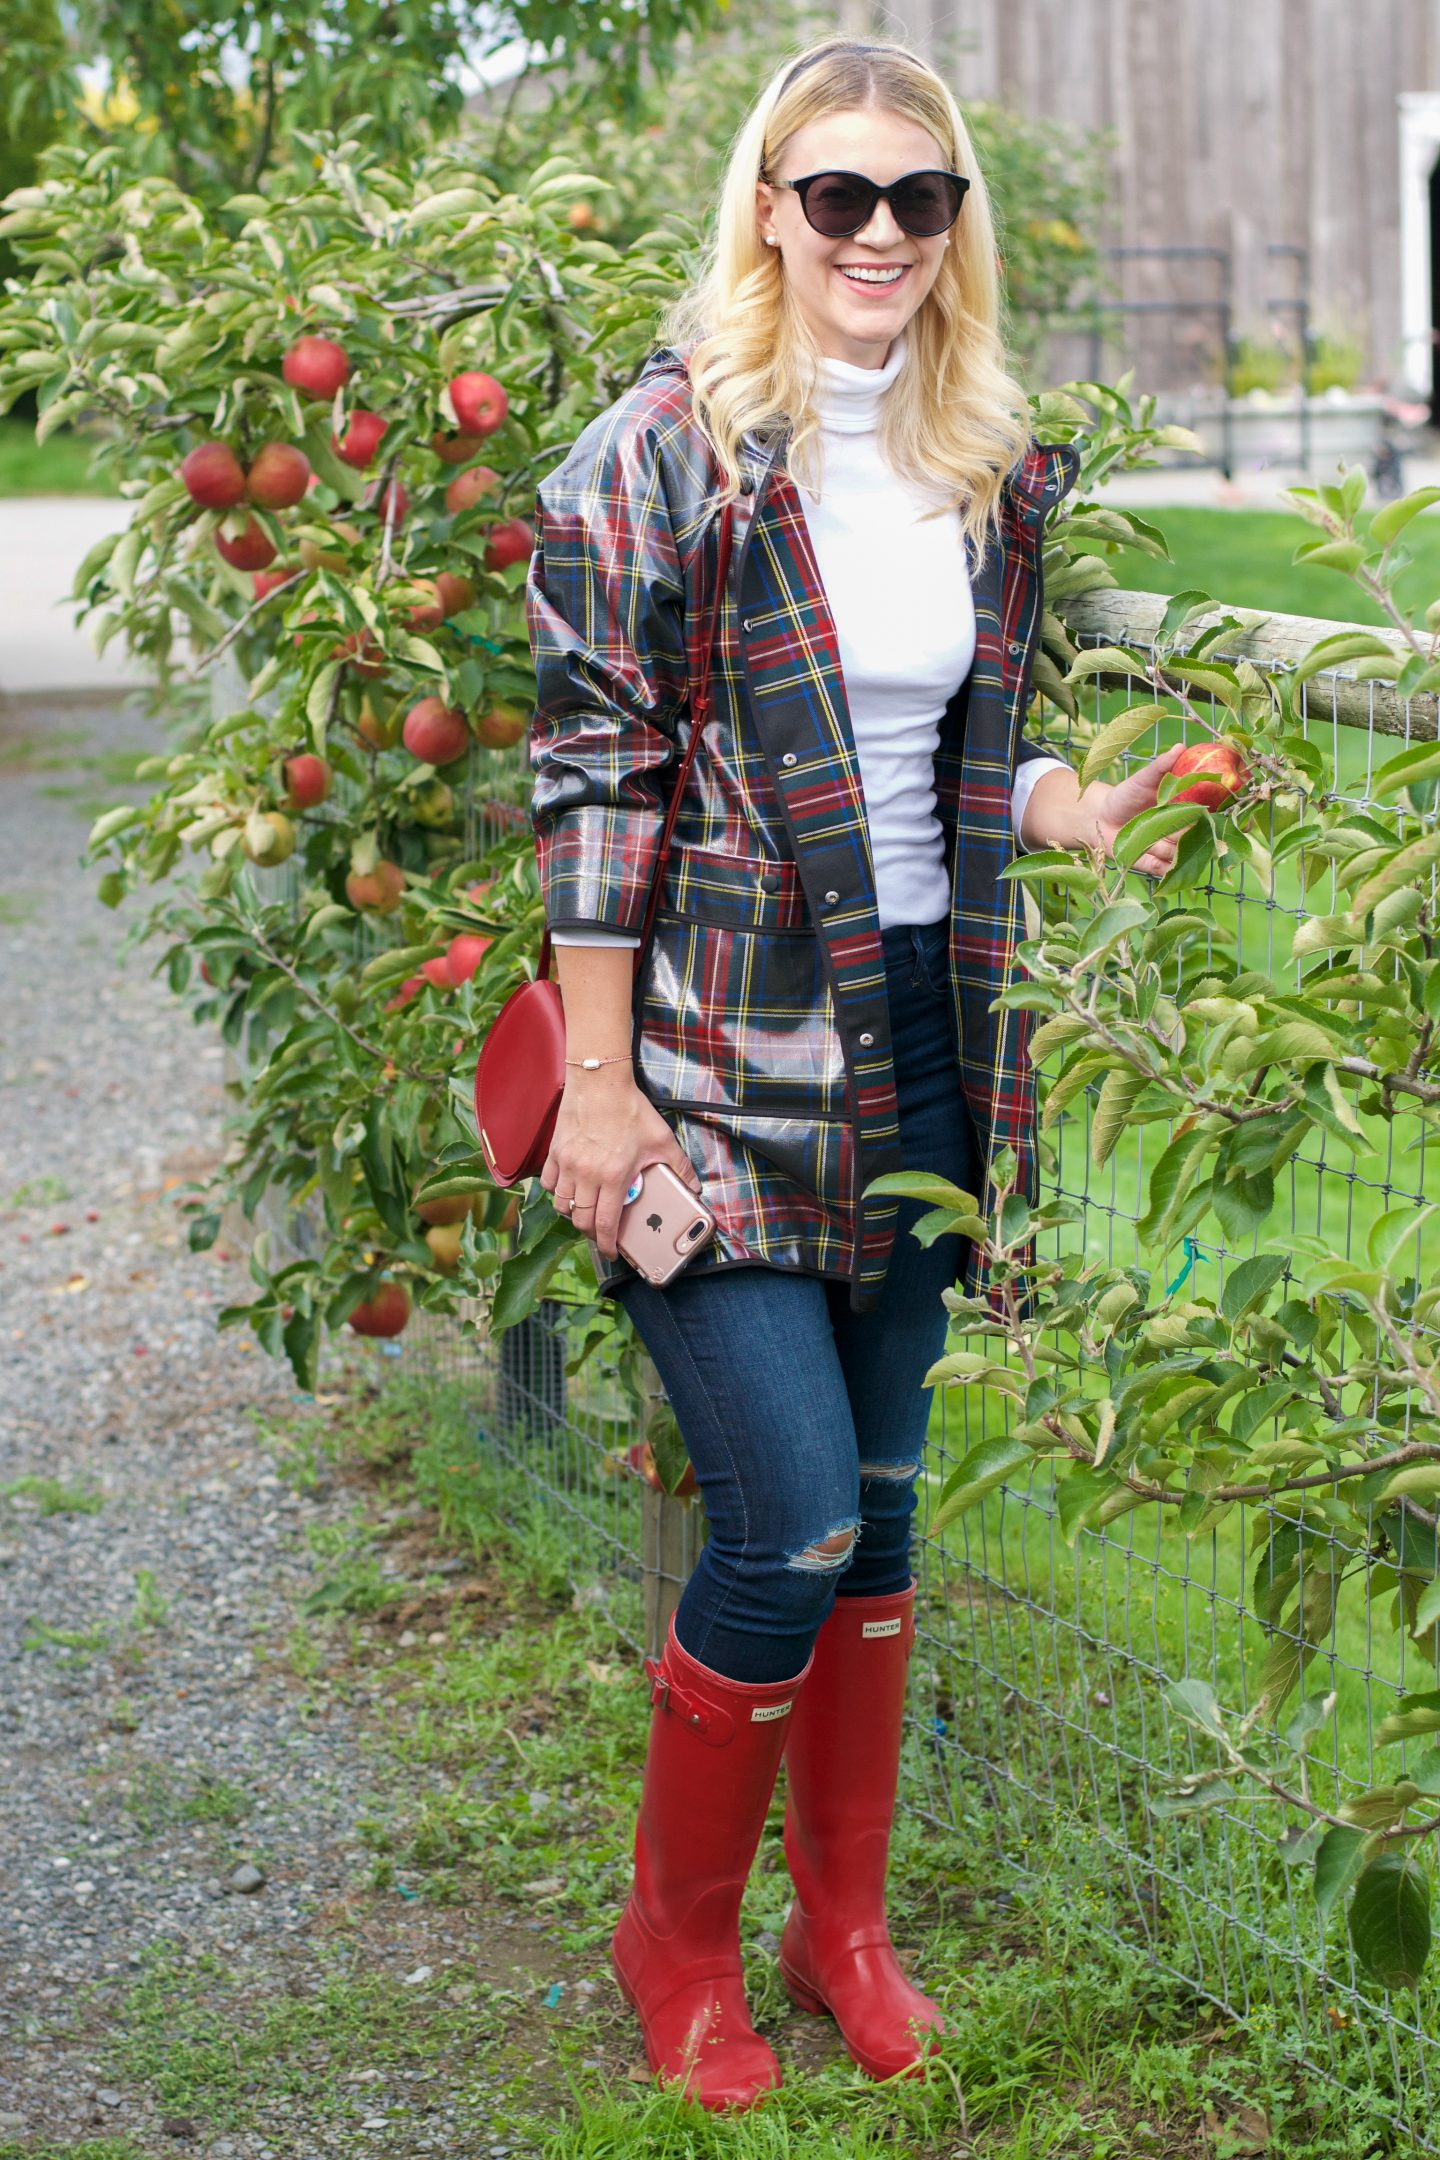 whit wanders fall activities | zara plaid raincoat hunter boots | Fall Activities by popular Seattle lifestyle blog, Whit Wanders: image of a woman in a apple orchard and wearing a Zara plaid rubberized rain coat, white turtle neck, jeans, and red Hunter rain boots.